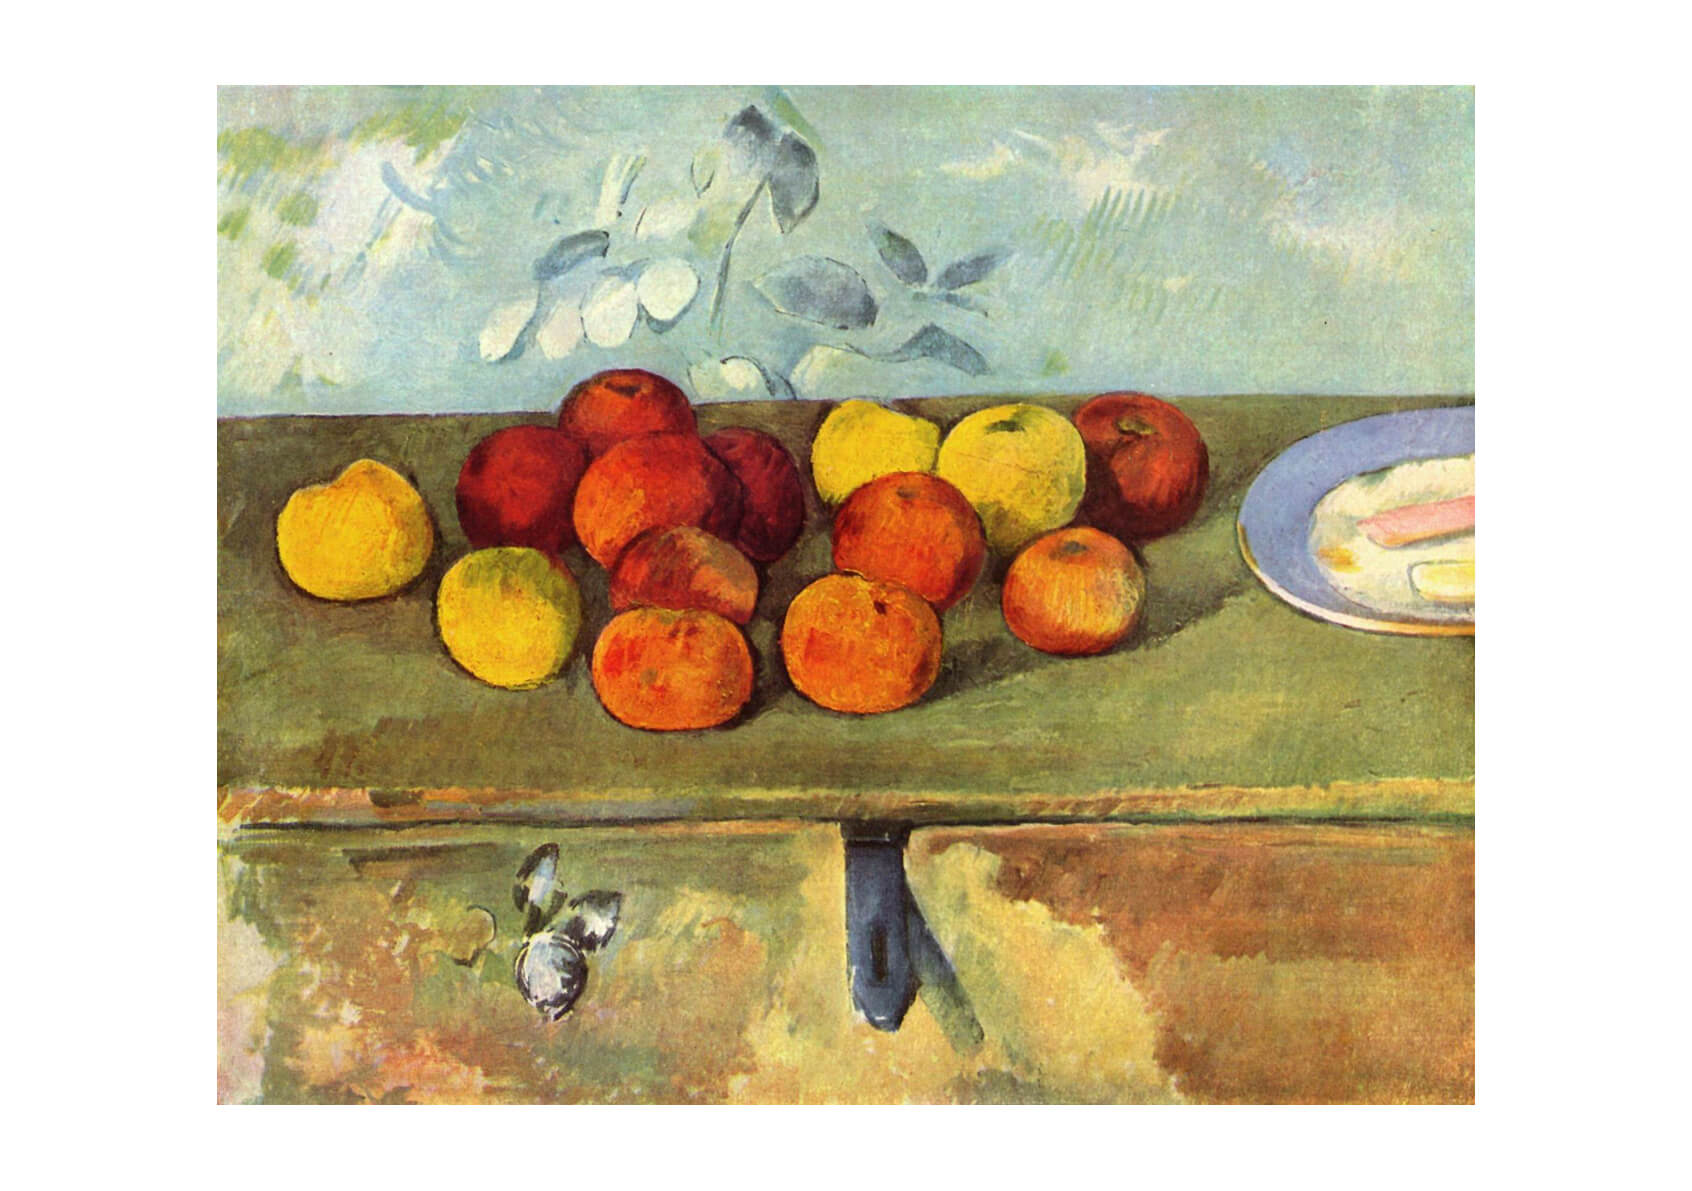 Paul Cezanne - Apples on the Table